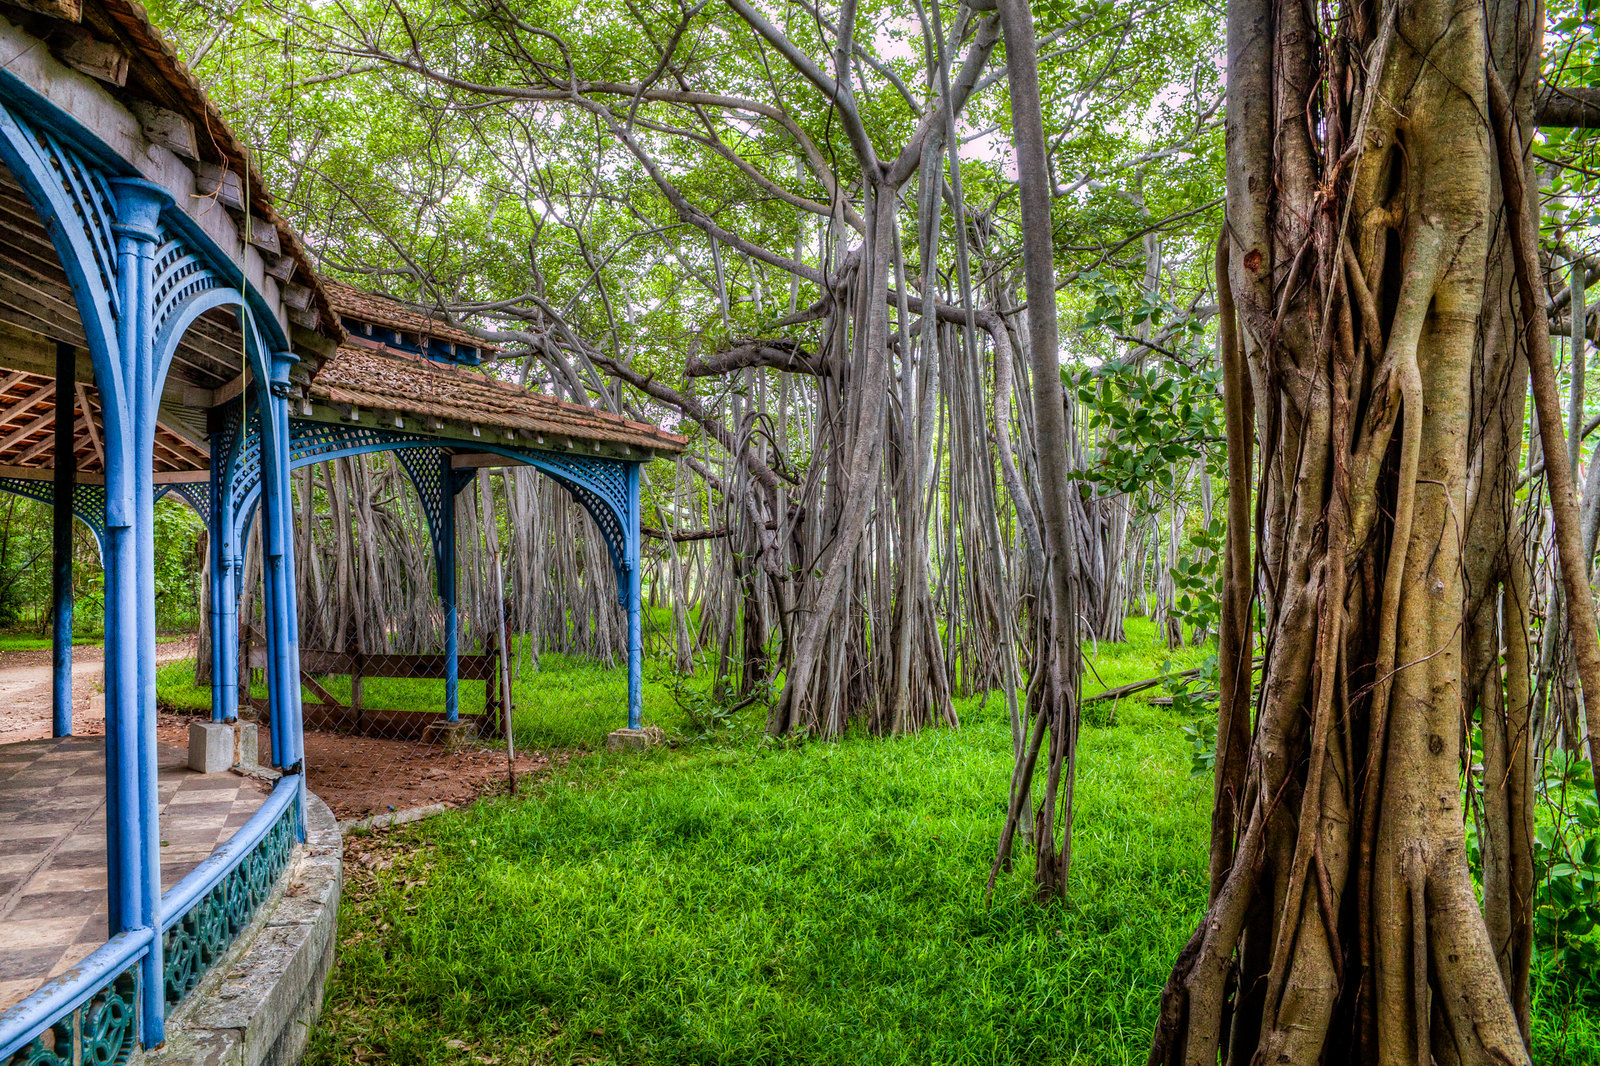 The ancient Banyan Tree of Adyar